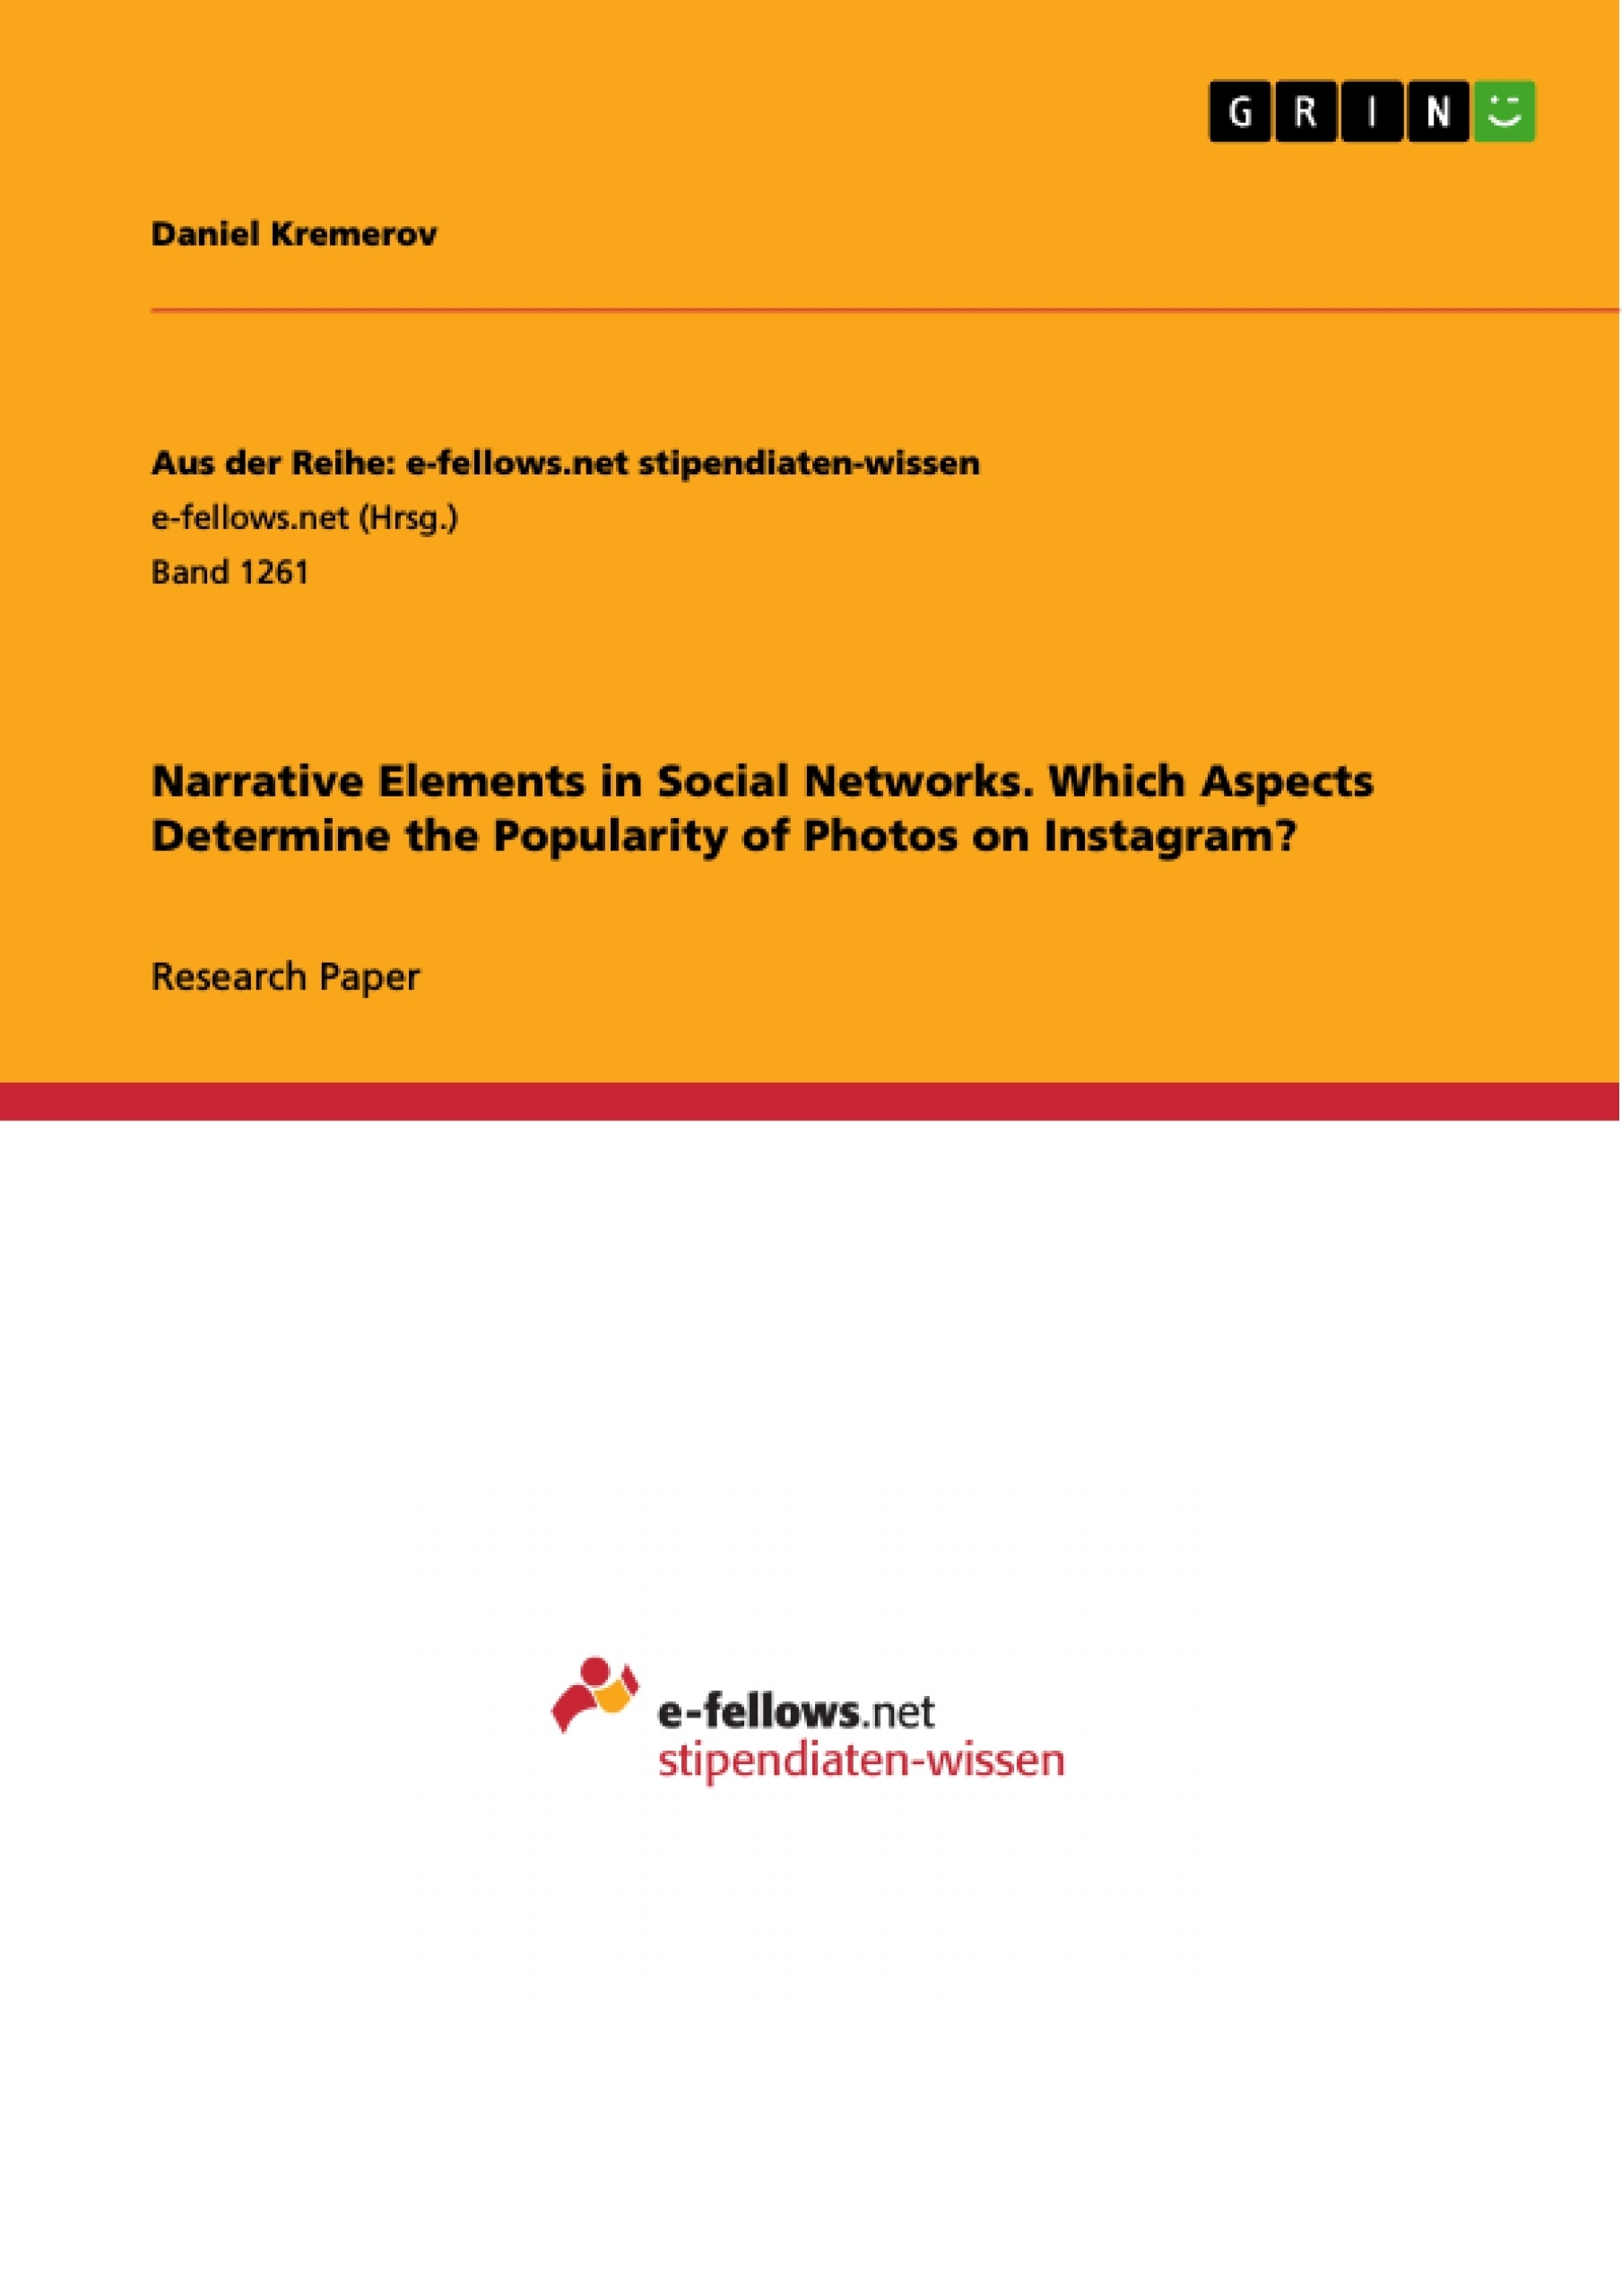 Title: Narrative Elements in Social Networks. Which Aspects Determine the Popularity of Photos on Instagram?